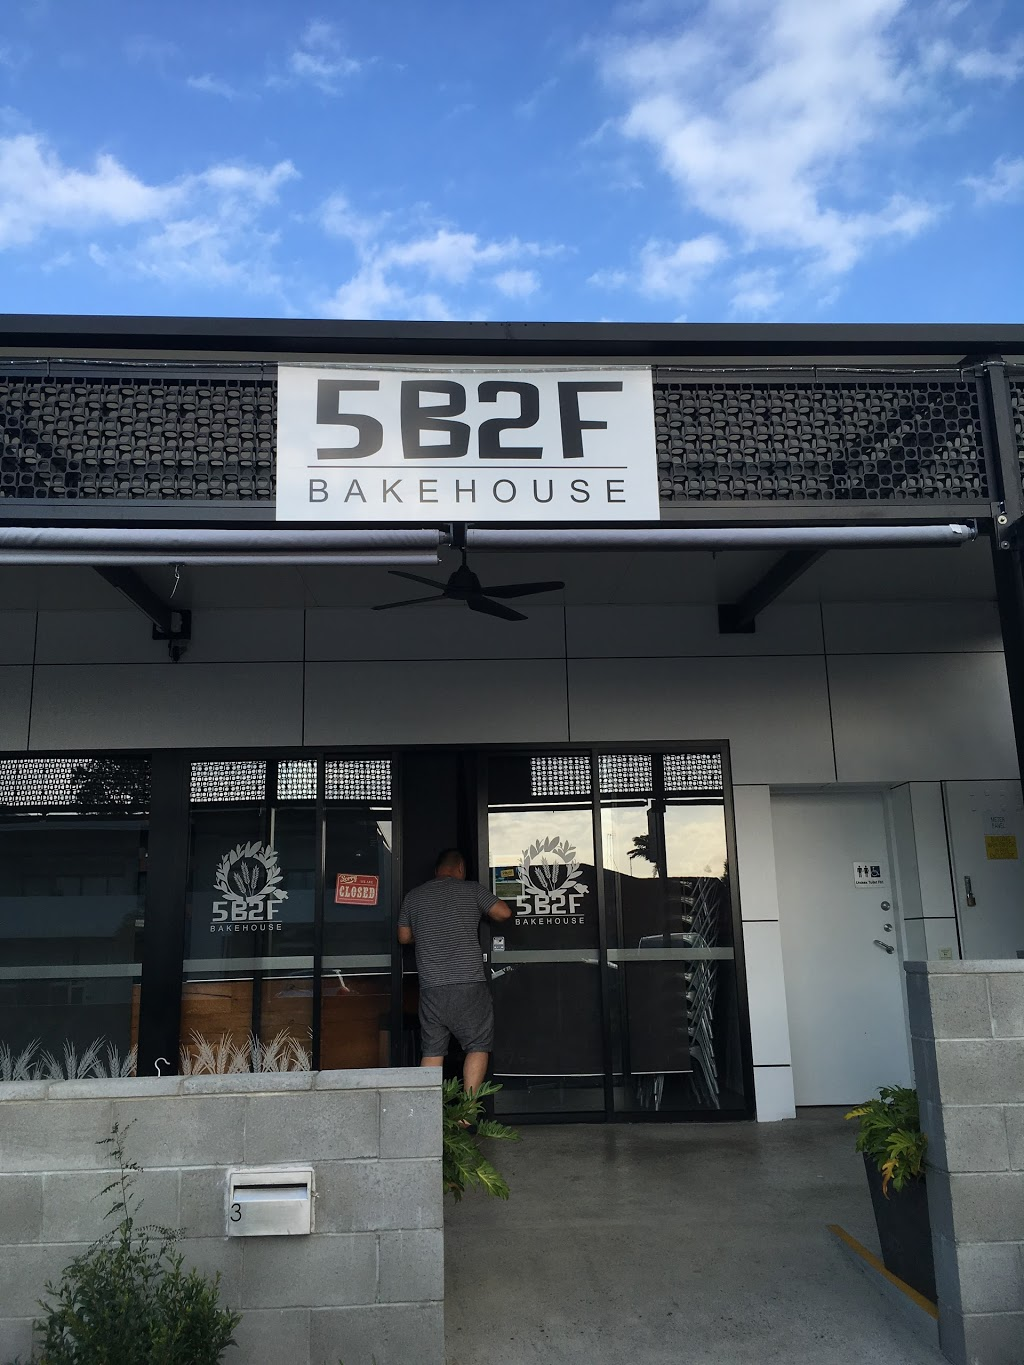 5B2F Bakehouse | cafe | 55 Brooke Ave, Southport QLD 4215, Australia | 0756325639 OR +61 7 5632 5639